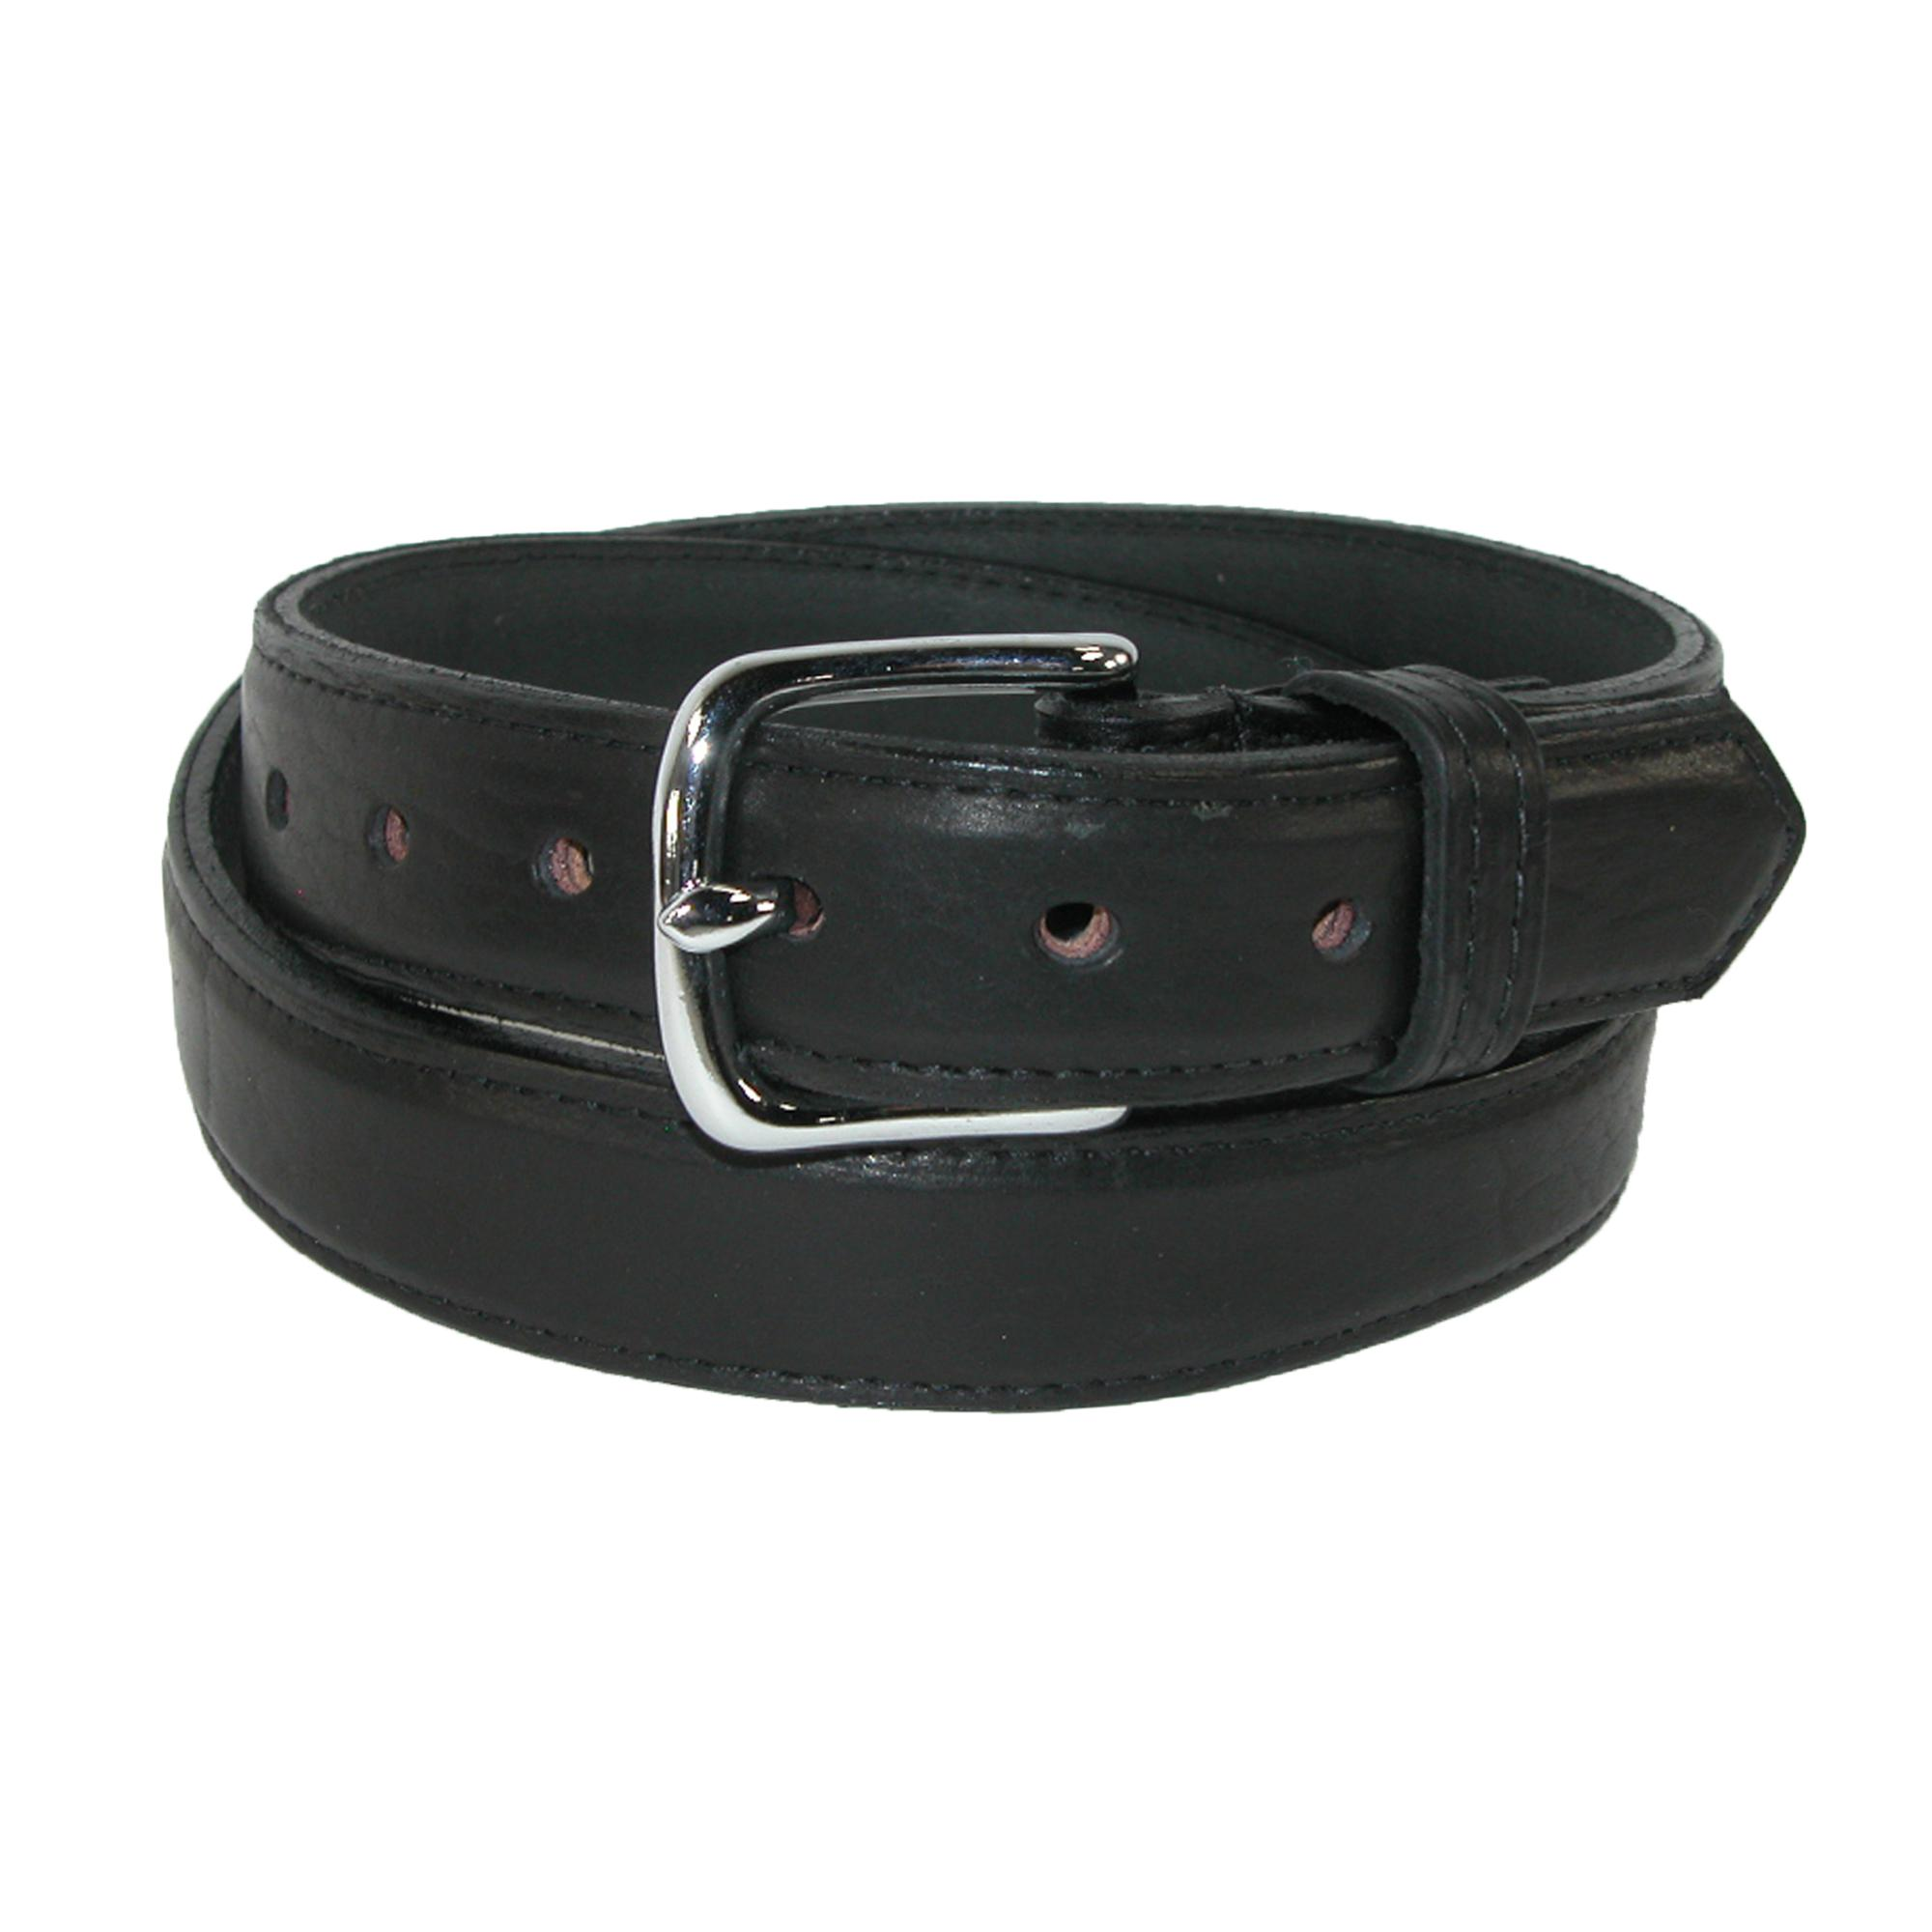 Boston Leather Men's Bison Leather 1.25 Inch Dress Belt